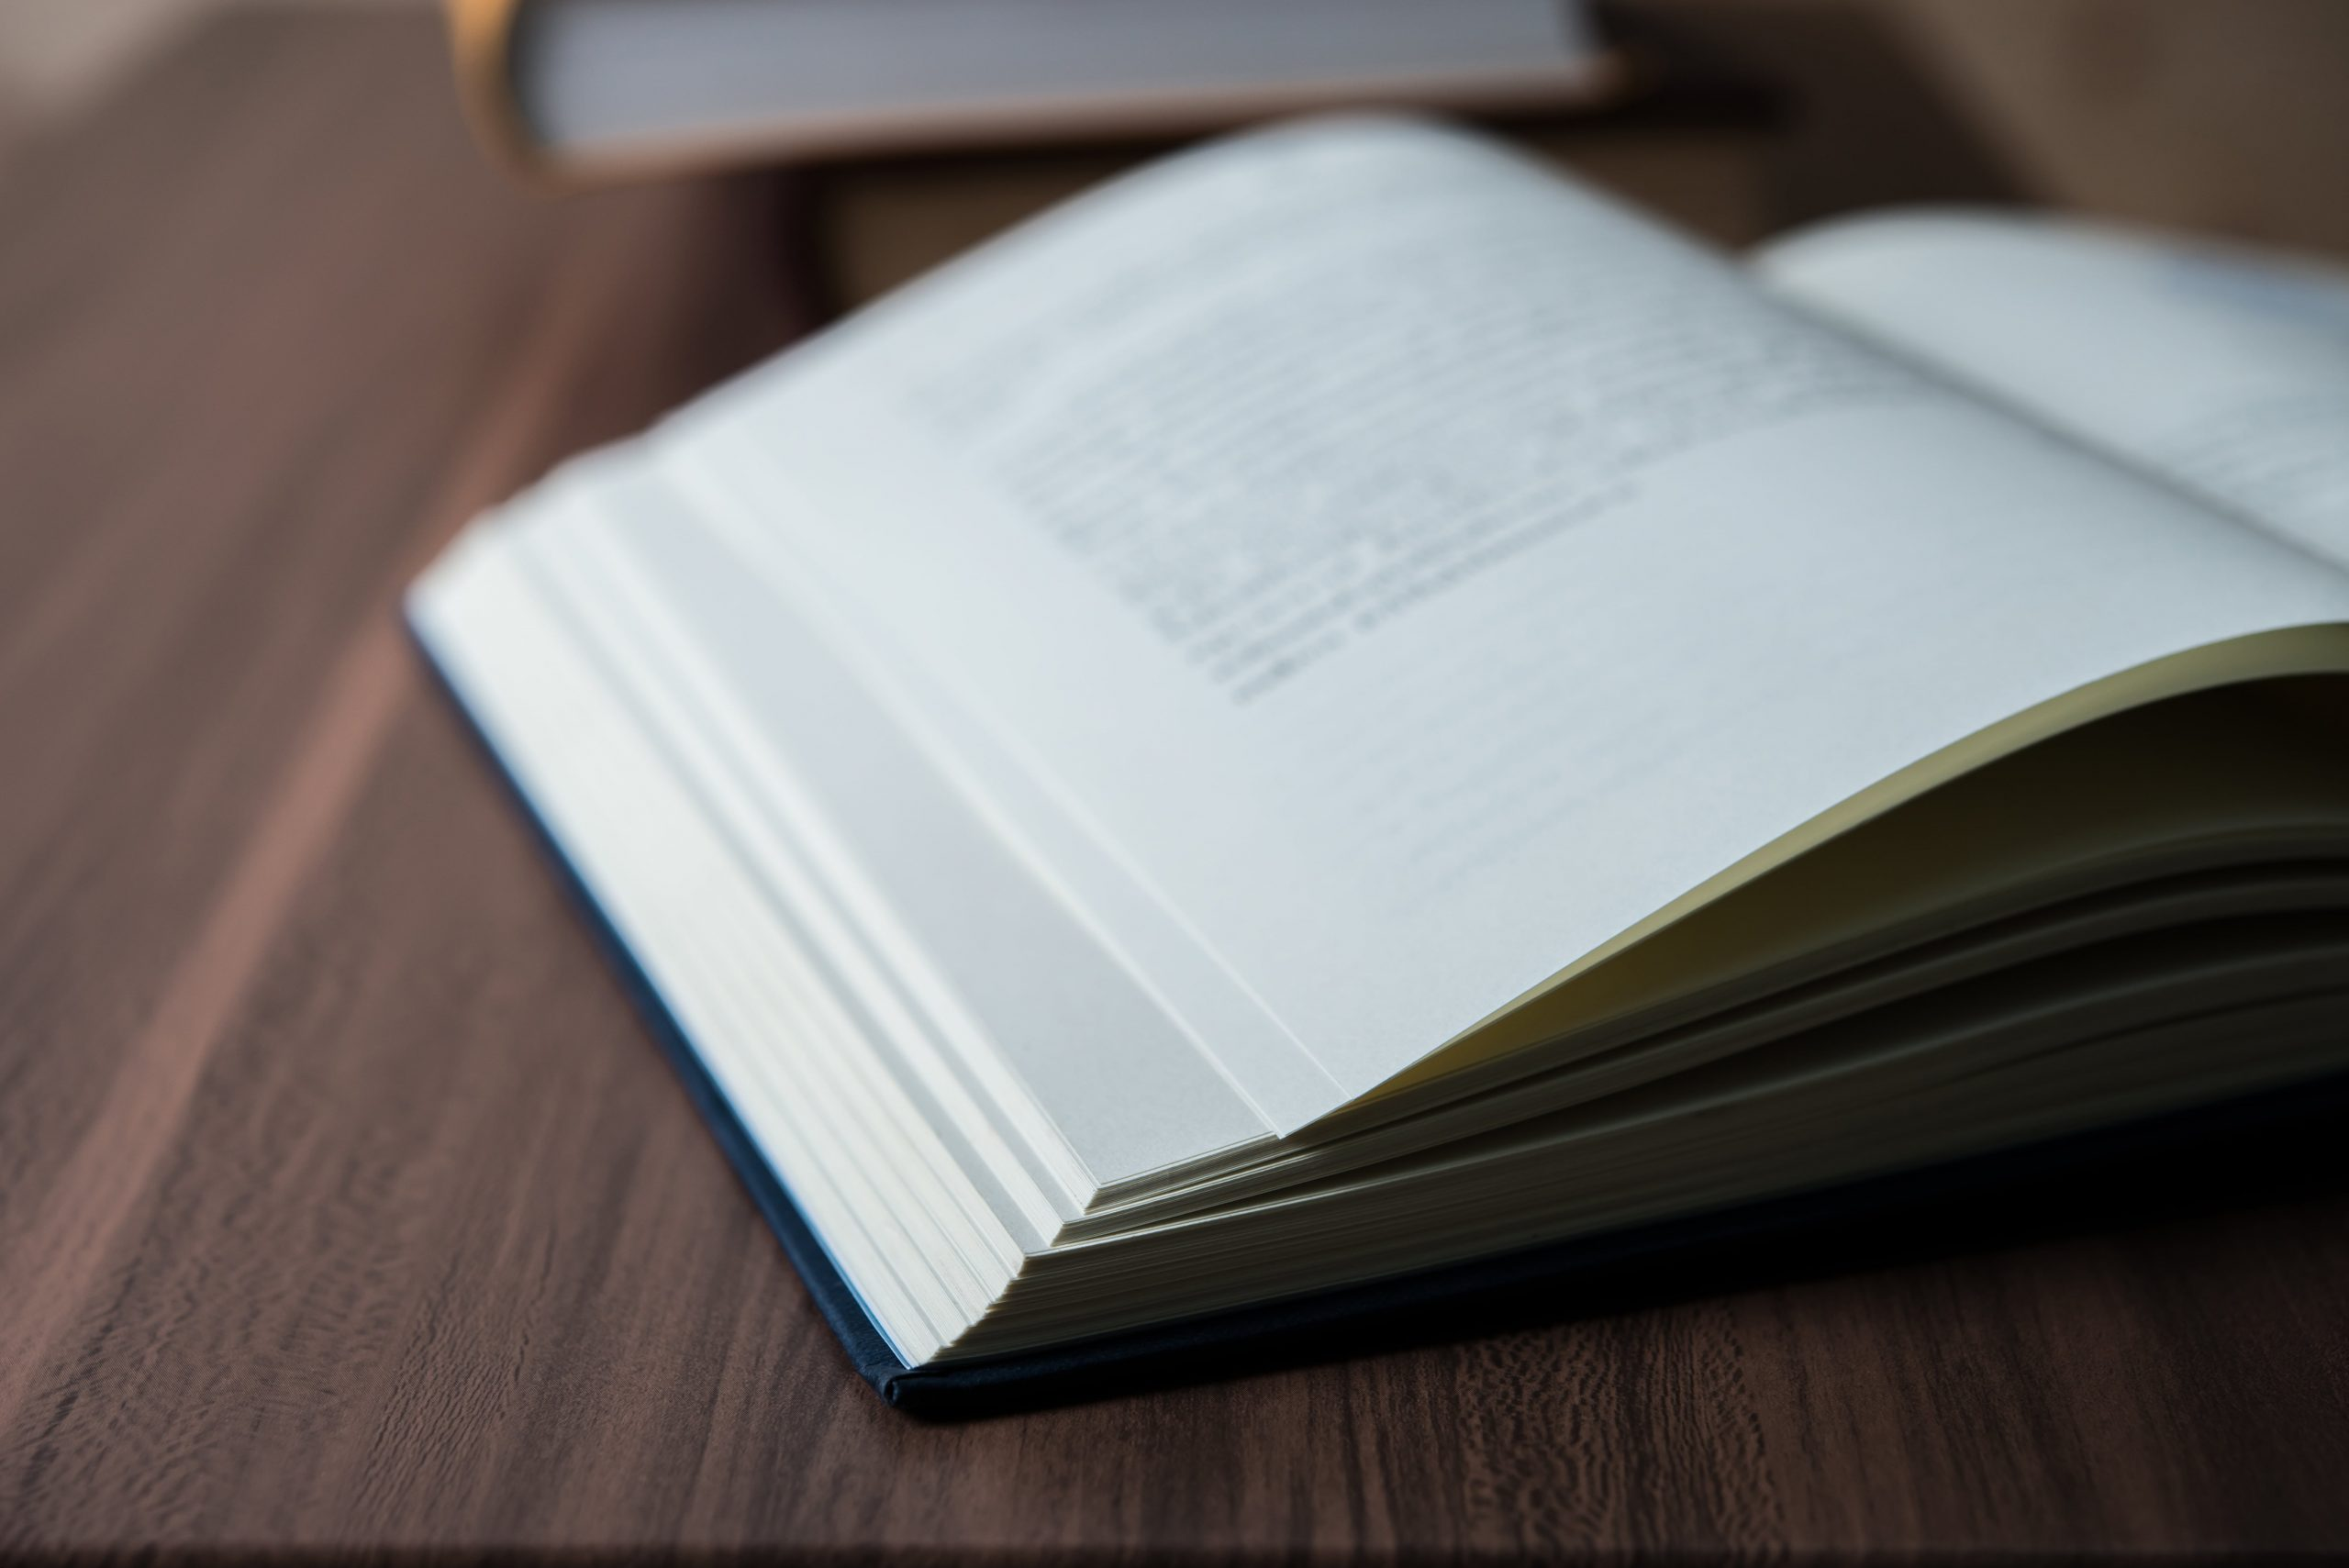 close-up-of-opened-book-on-wooden-table-education–M9DTS2V